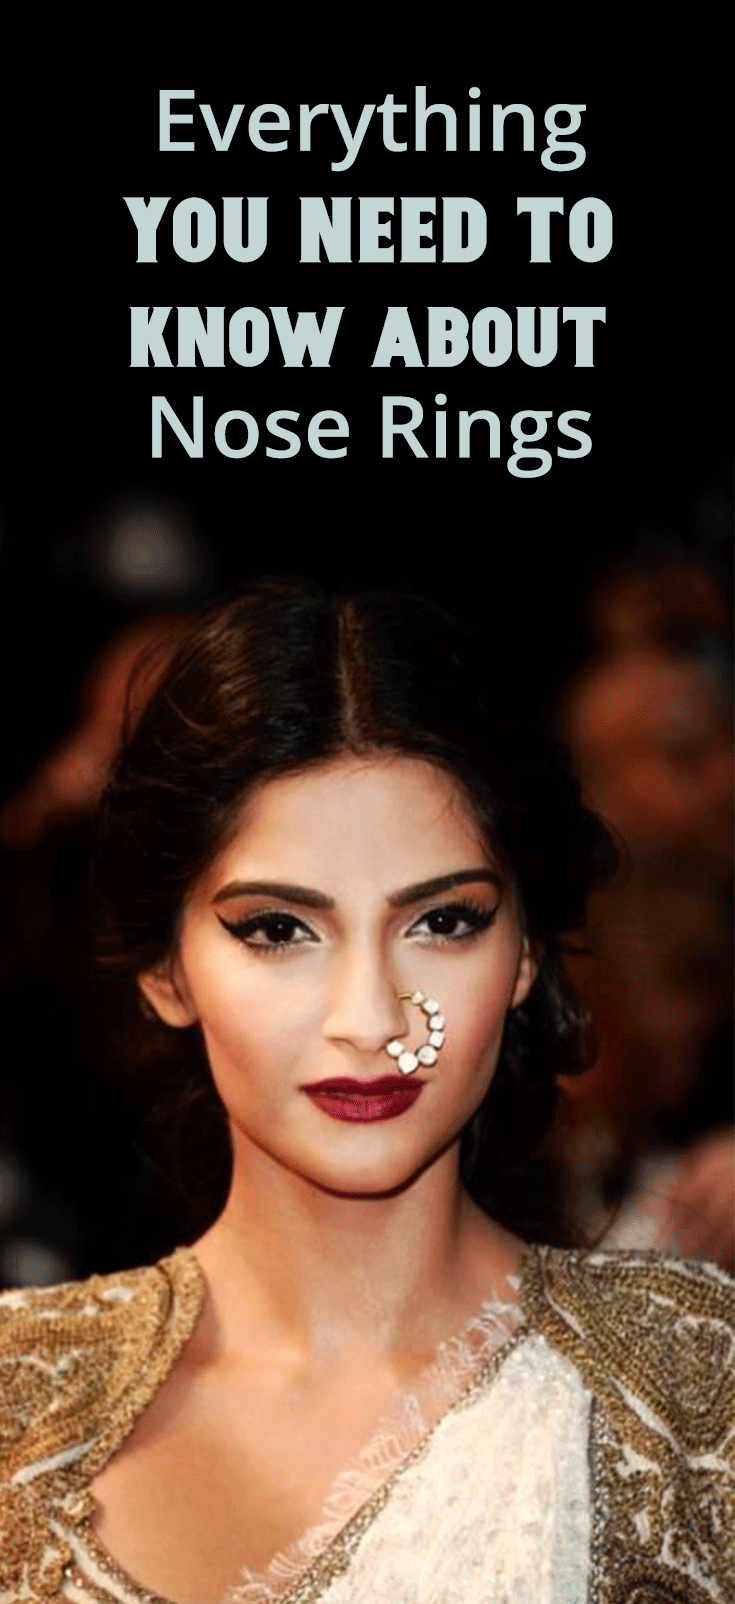 Everything You Need To Know About Nose Rings